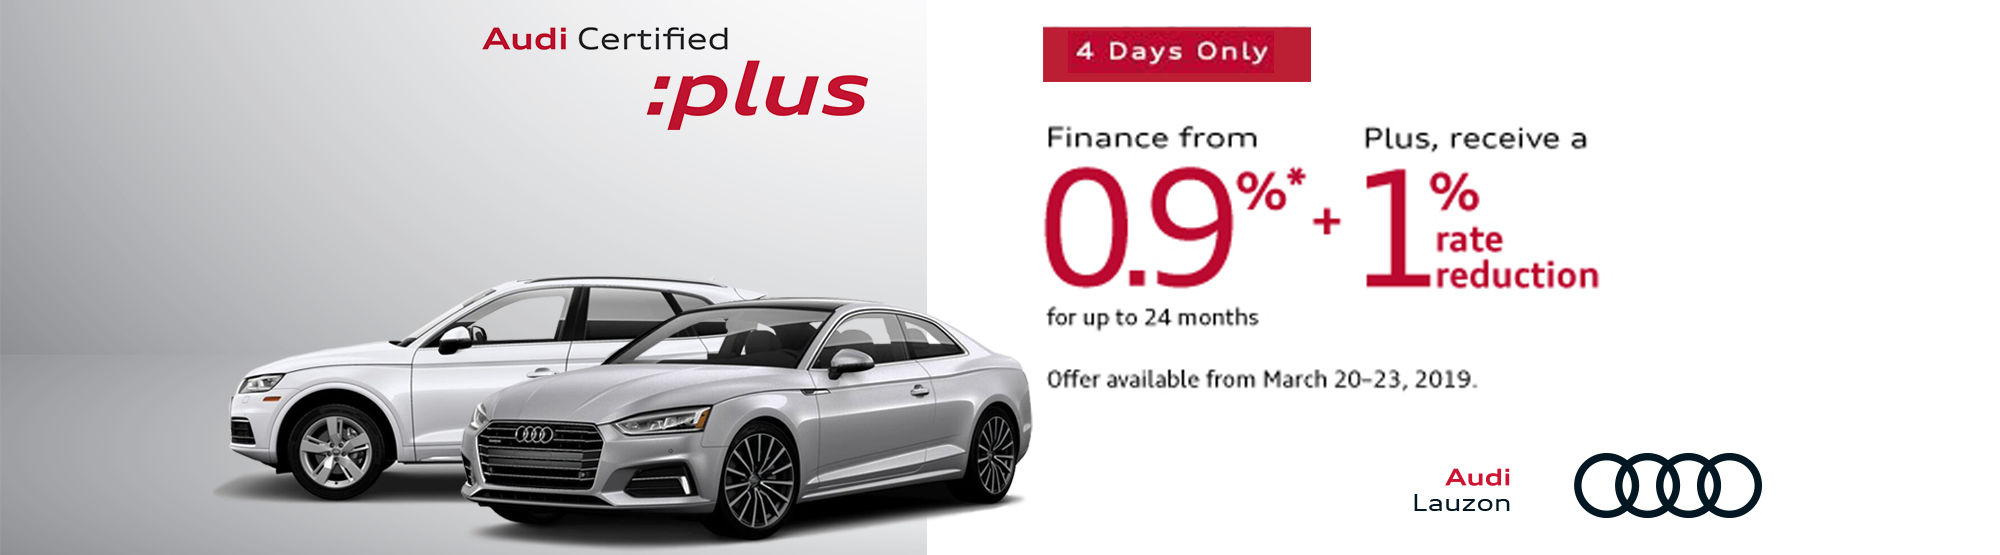 Audi Certified plus Event March 2019